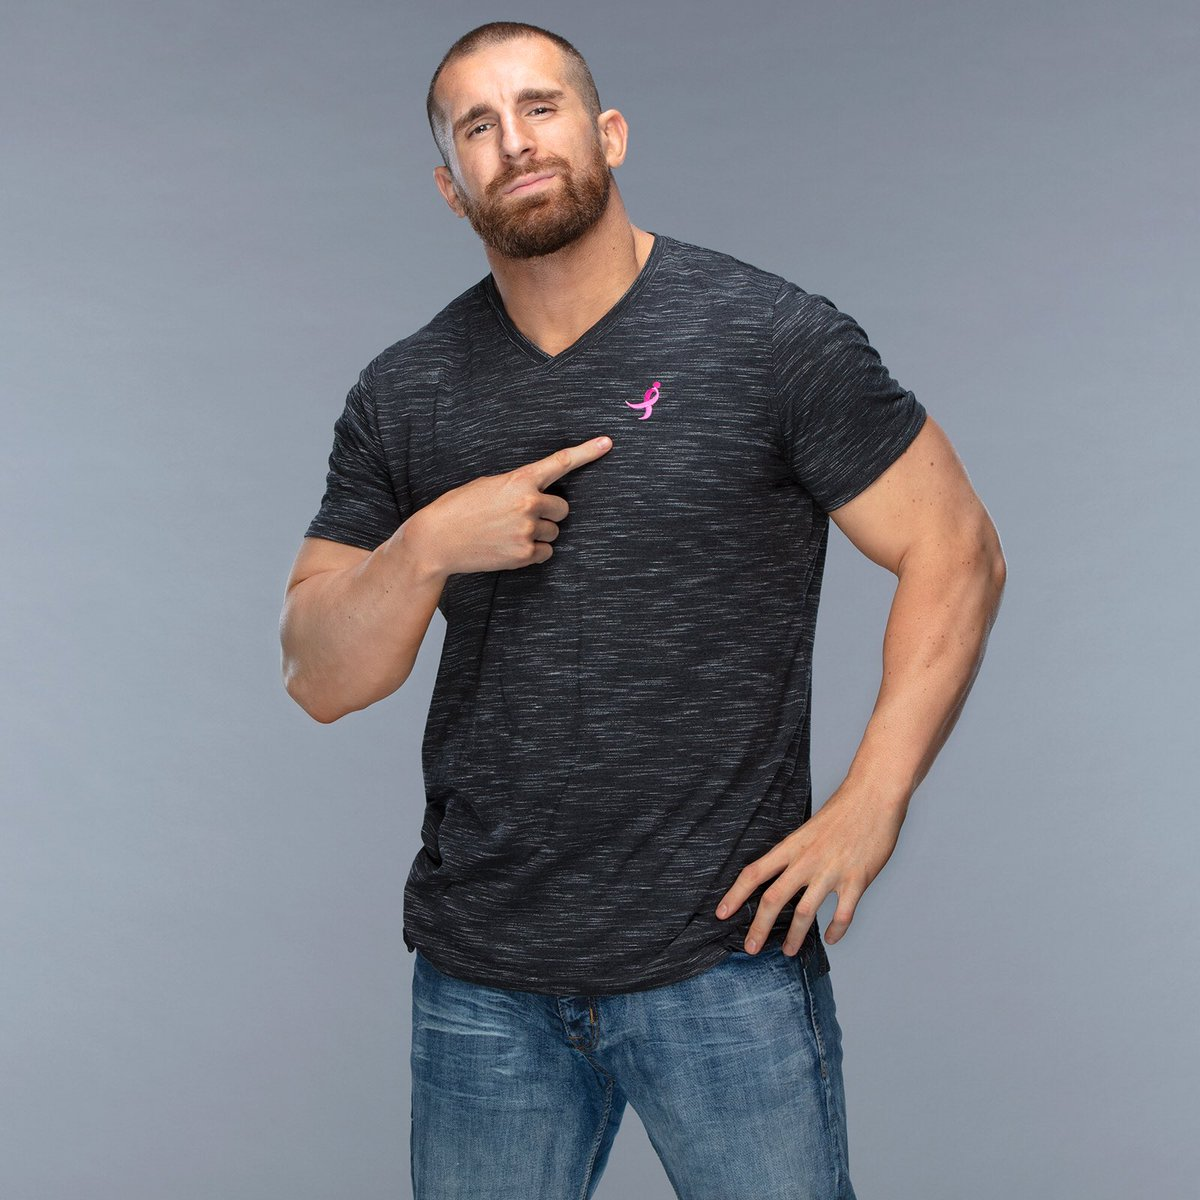 MojoRawleyWWE photo